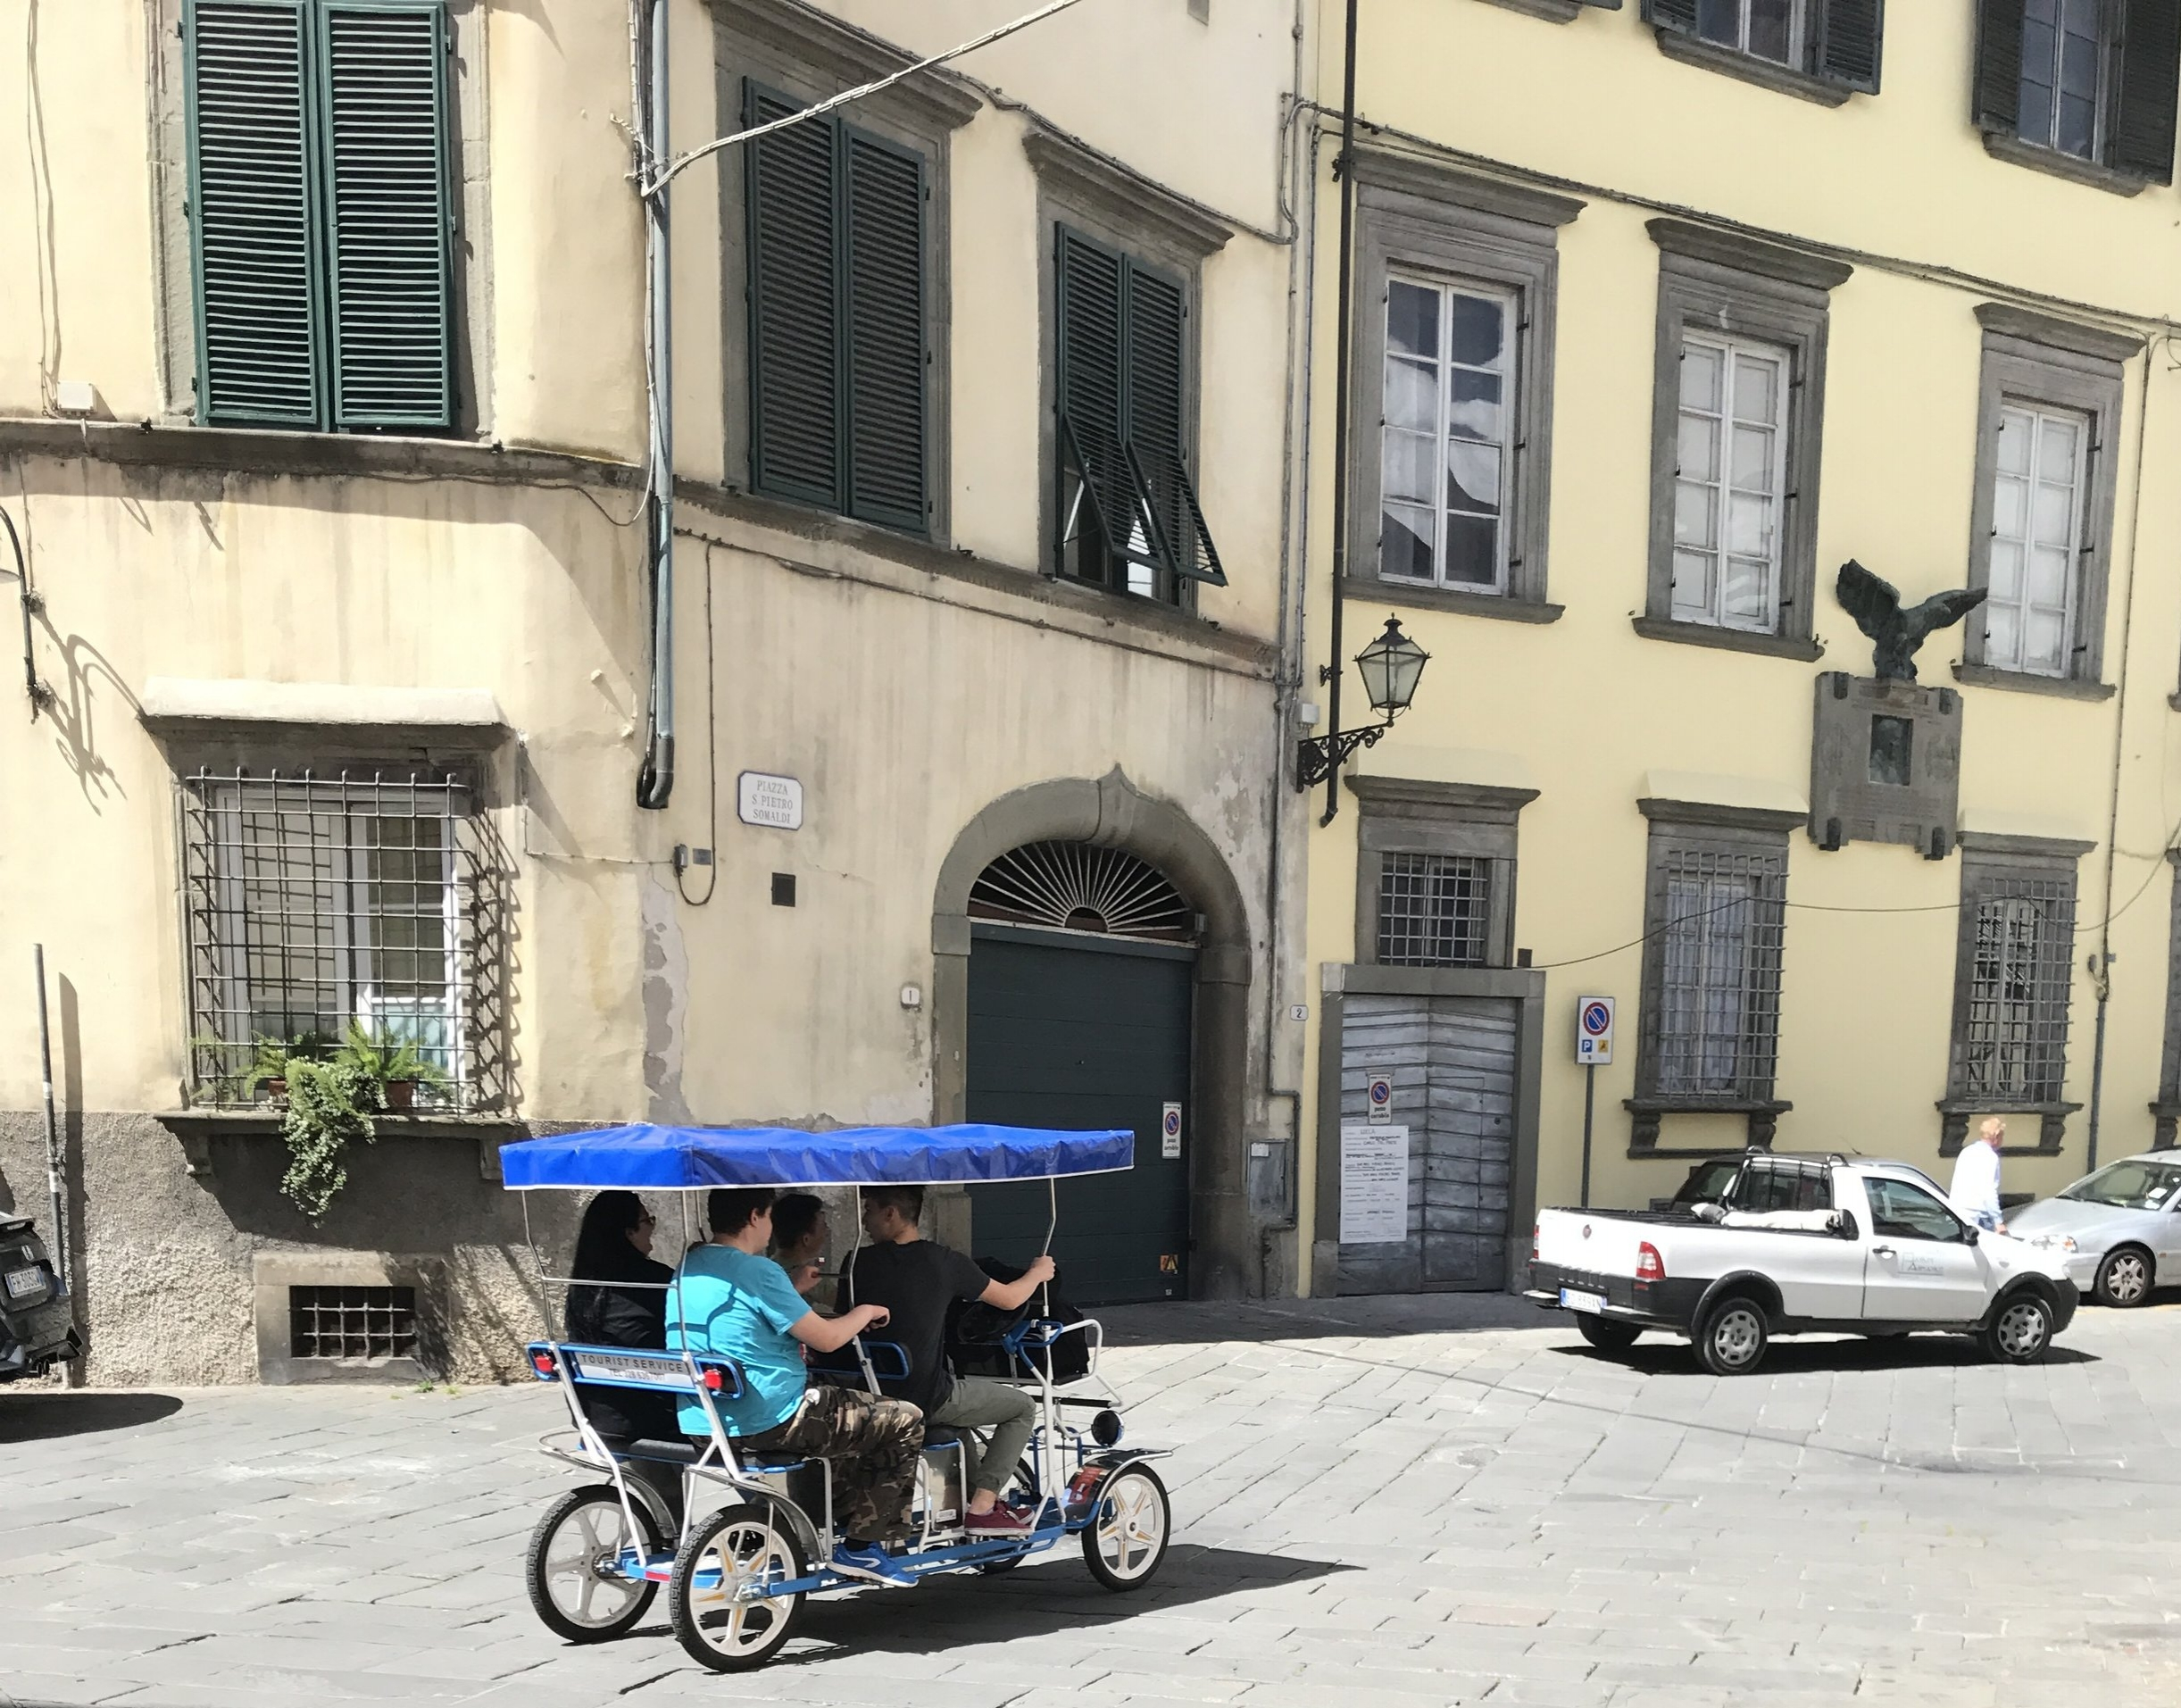 Kids pedal their way through town.